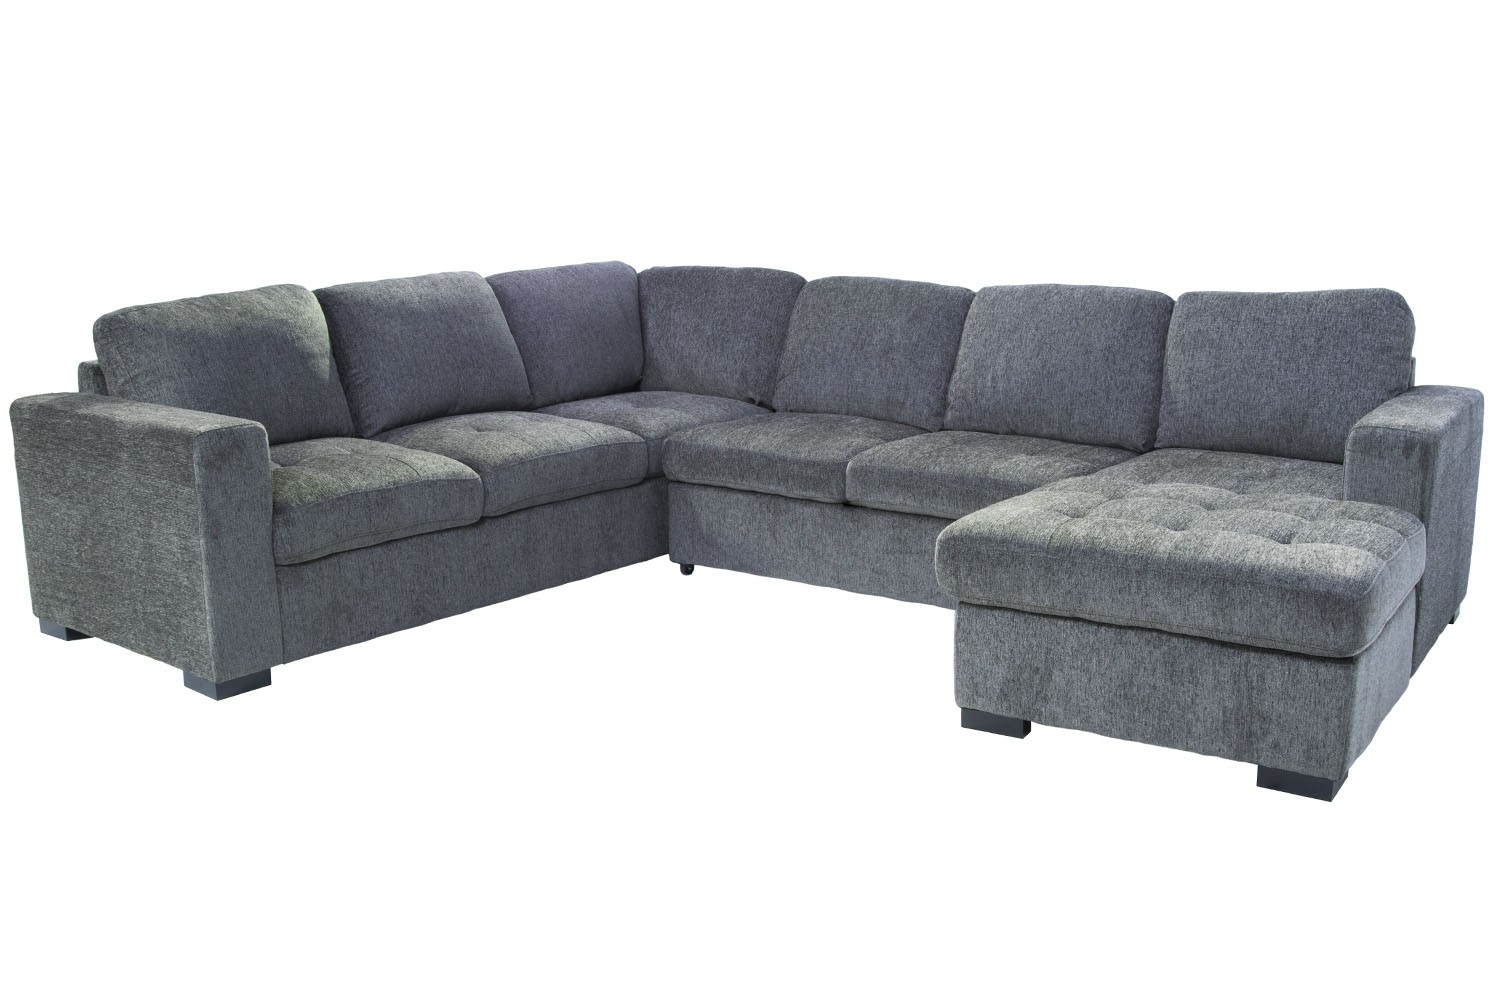 Sectional Sofas | Save Mor Online And In Store In Aspen 2 Piece Sleeper Sectionals With Laf Chaise (Image 22 of 25)